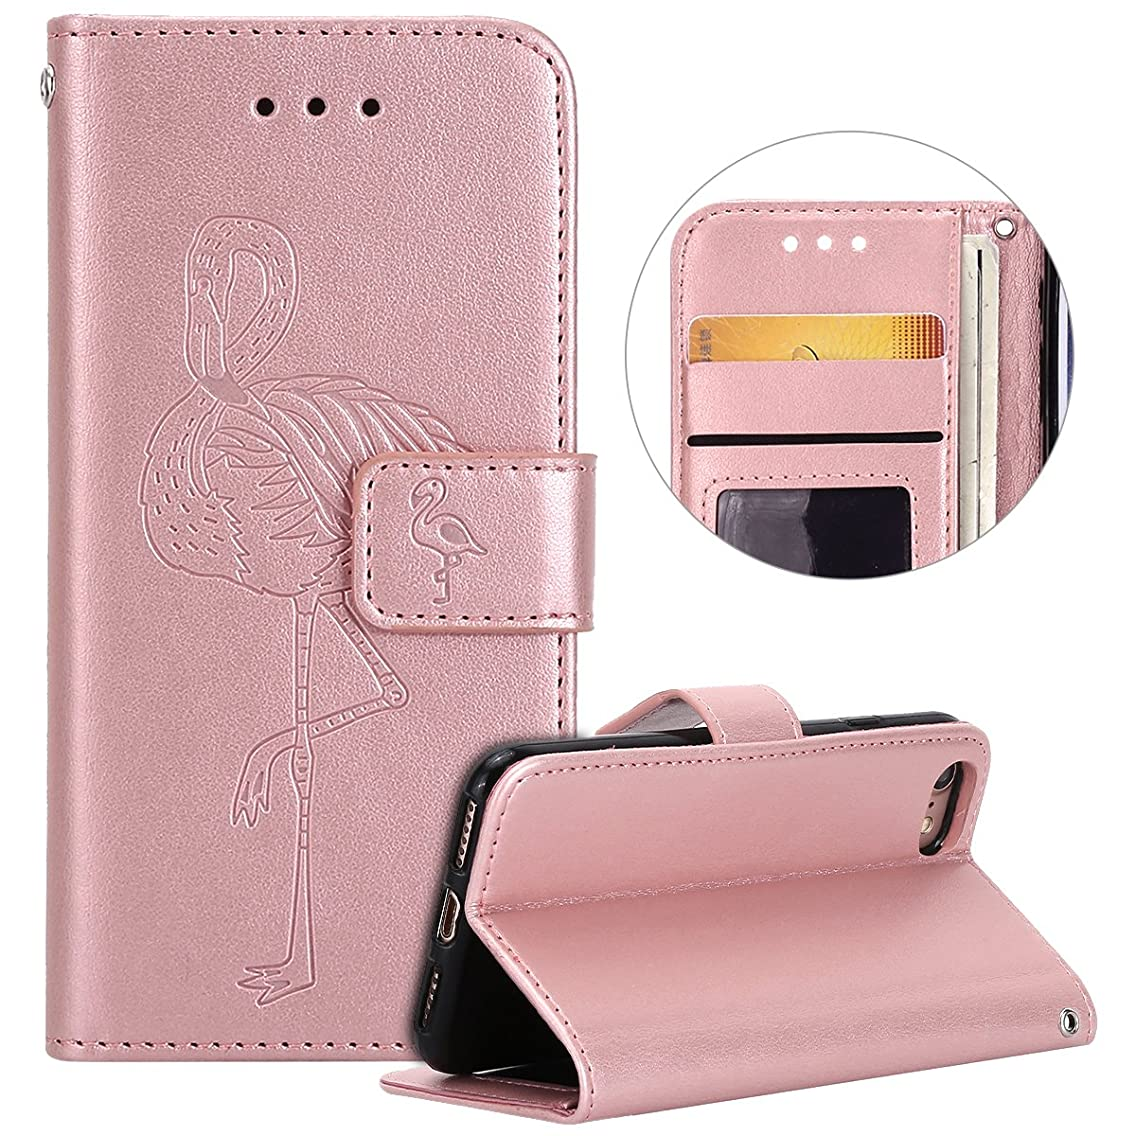 iPhone 7 Case,Case for iPhone 8, Surakey Flamingos Case with Credit Card Slots ID Holders Stand Magnetic PU Leather Wallet Flap Cover (Stand View Case) for Apple iPhone 7 / iPhone 8 - Rose gold